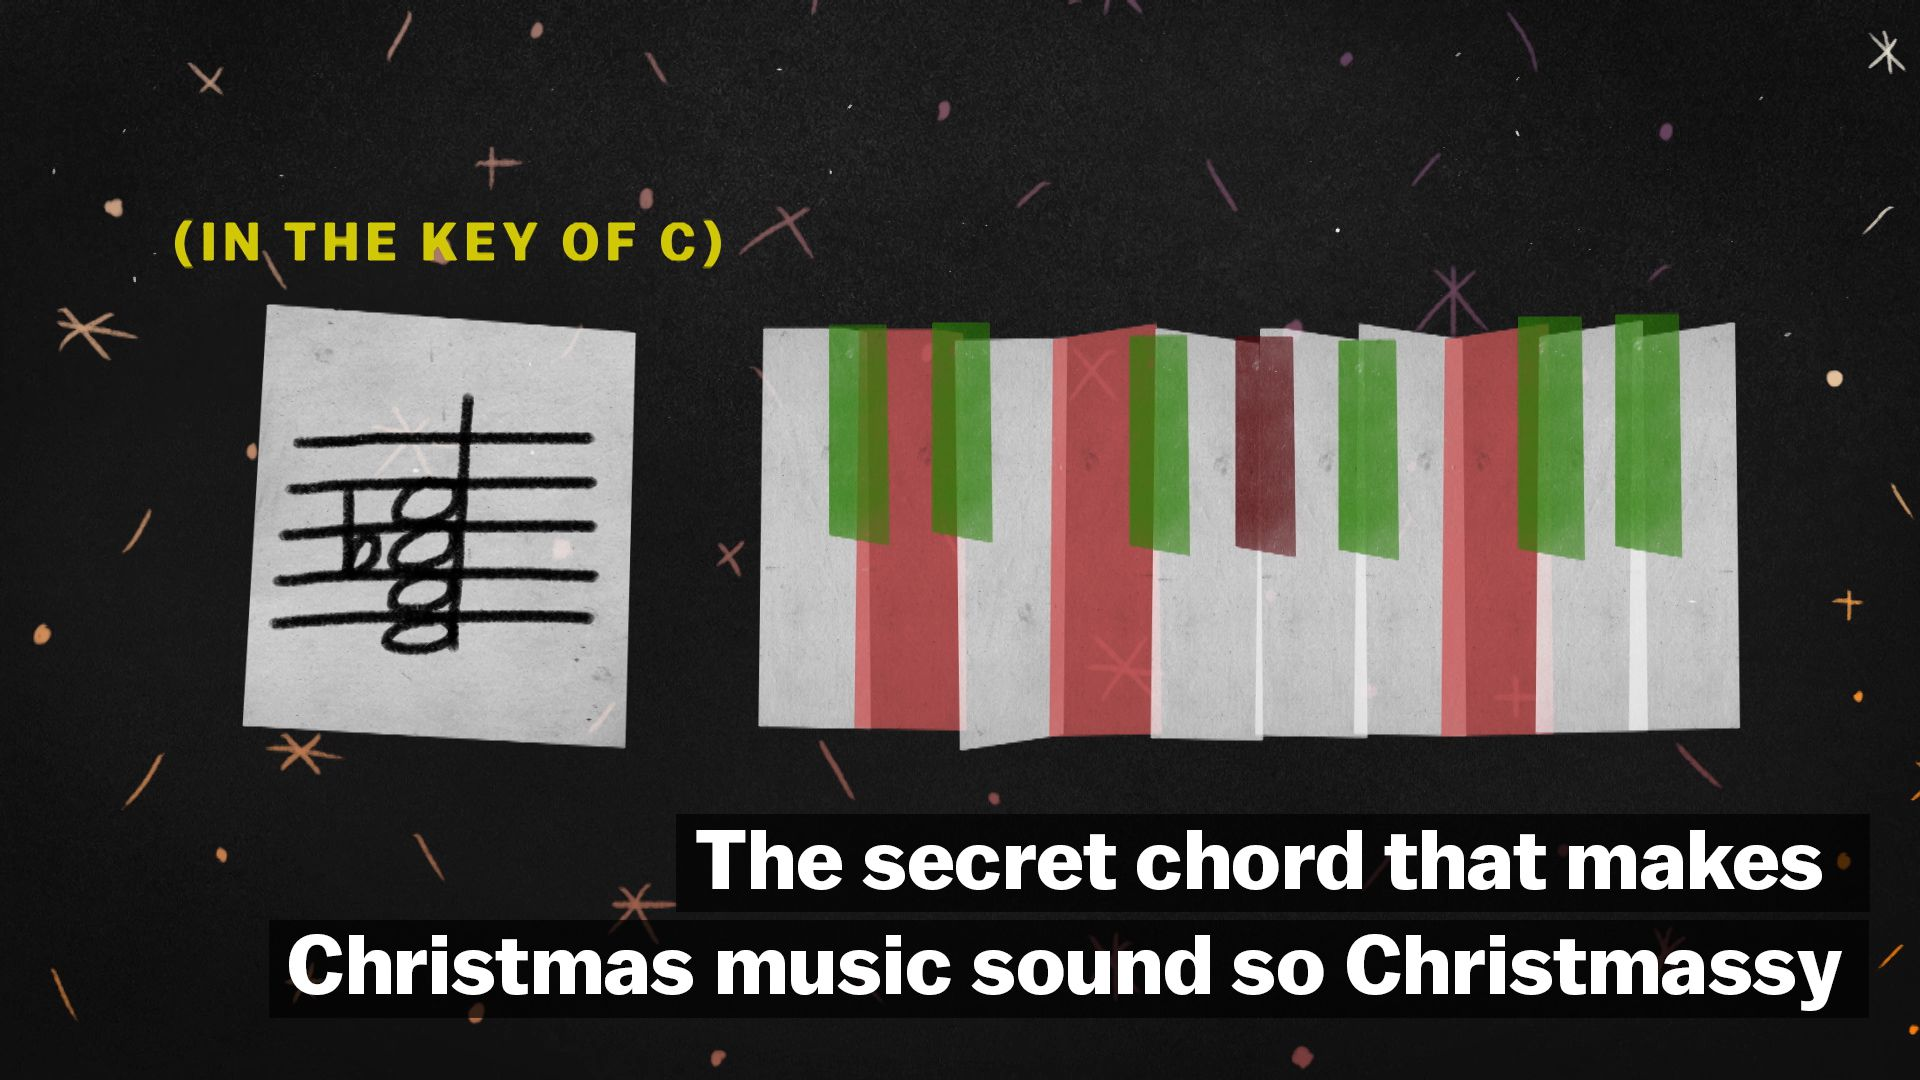 The Secret Chord That Makes Christmas Music Sound So Christmassy Vox